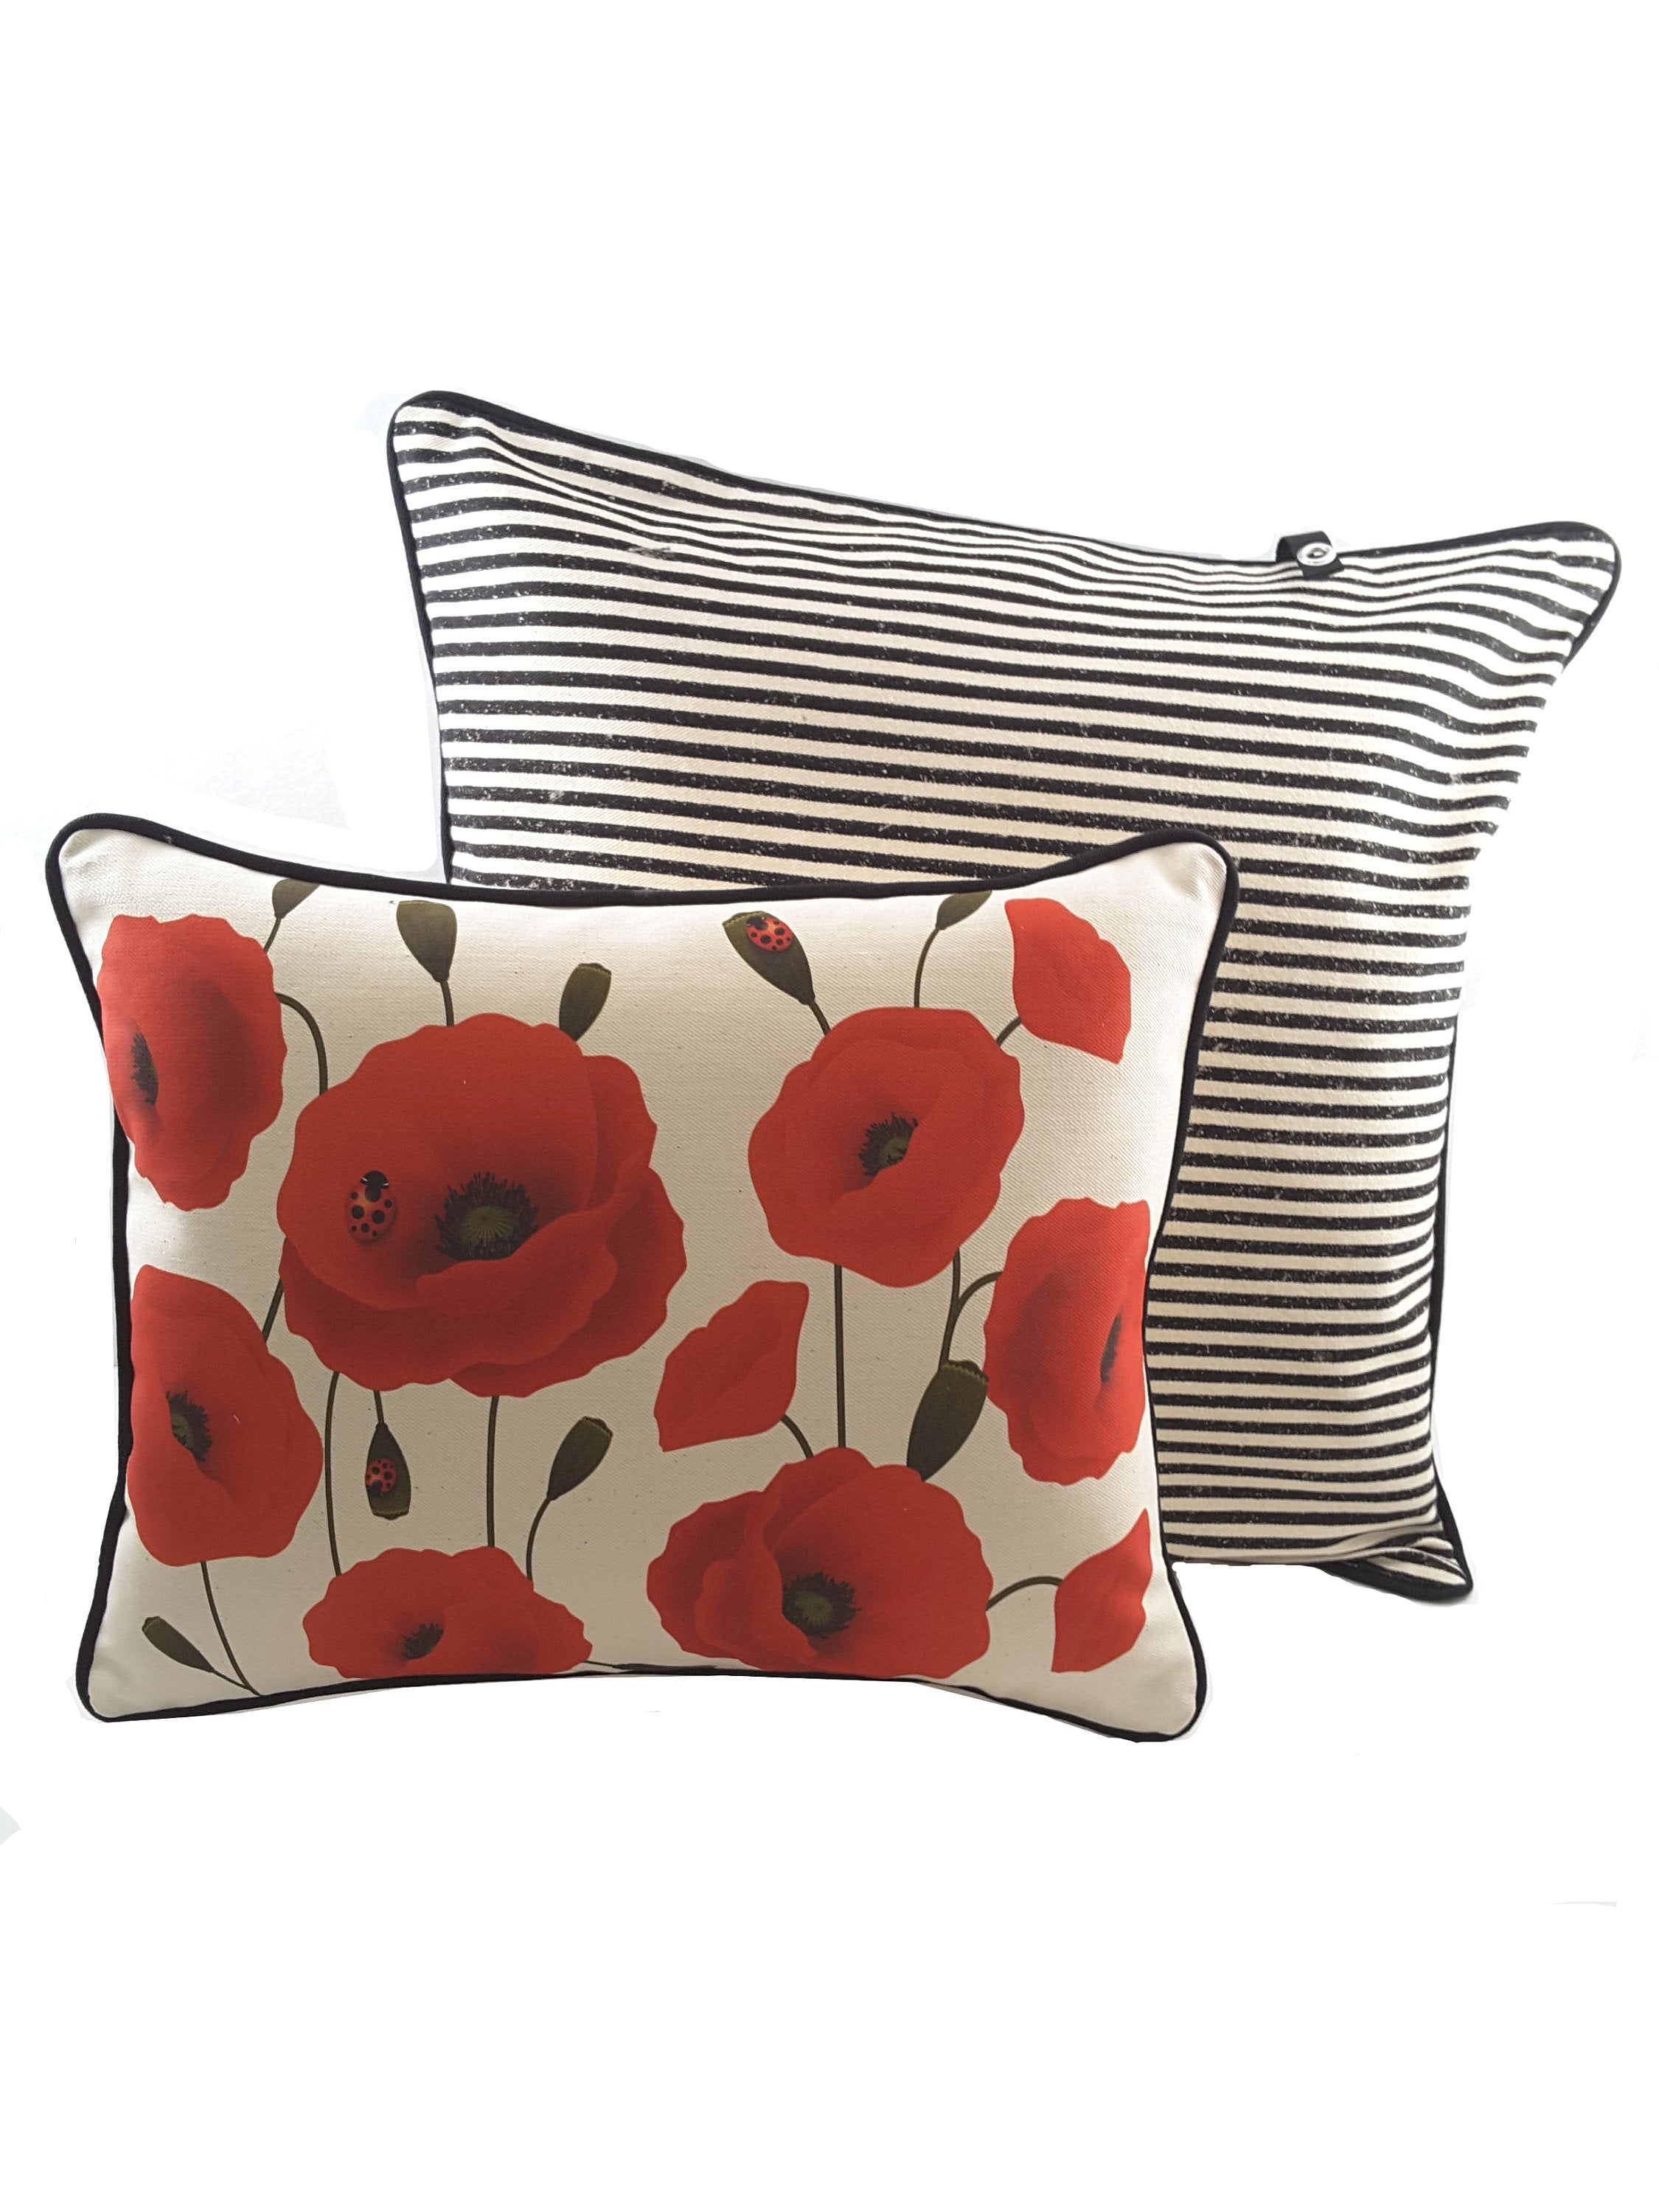 Natural Decorative Denim Pillow Cover with Red Poppies - TheLastWordBish.com